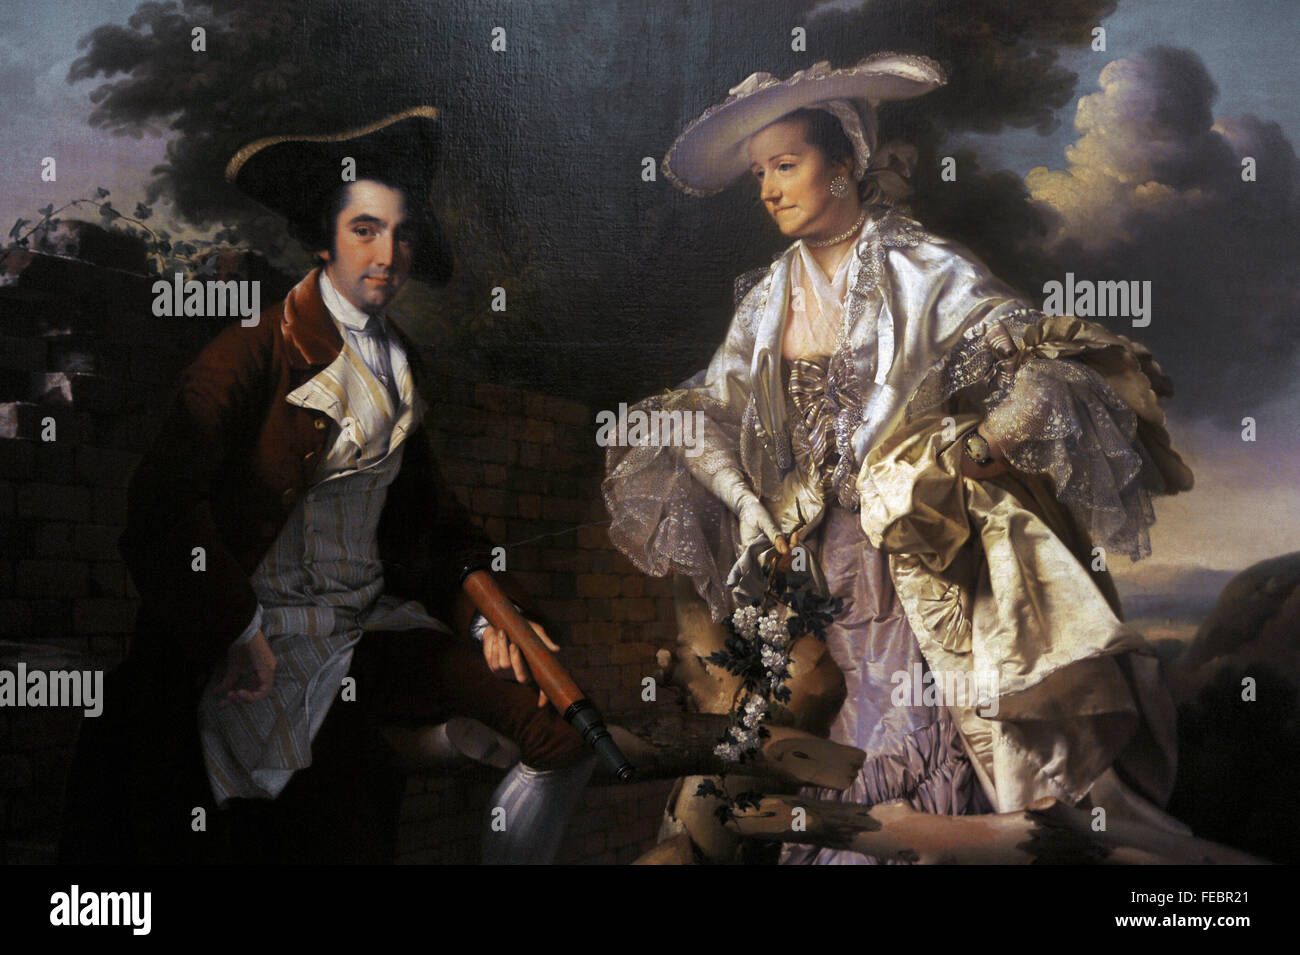 Peter Perez Burdett (c.1734-1793). English cartographer and artist. Peter Perez Burdett and his first wife Hannah, Stock Photo